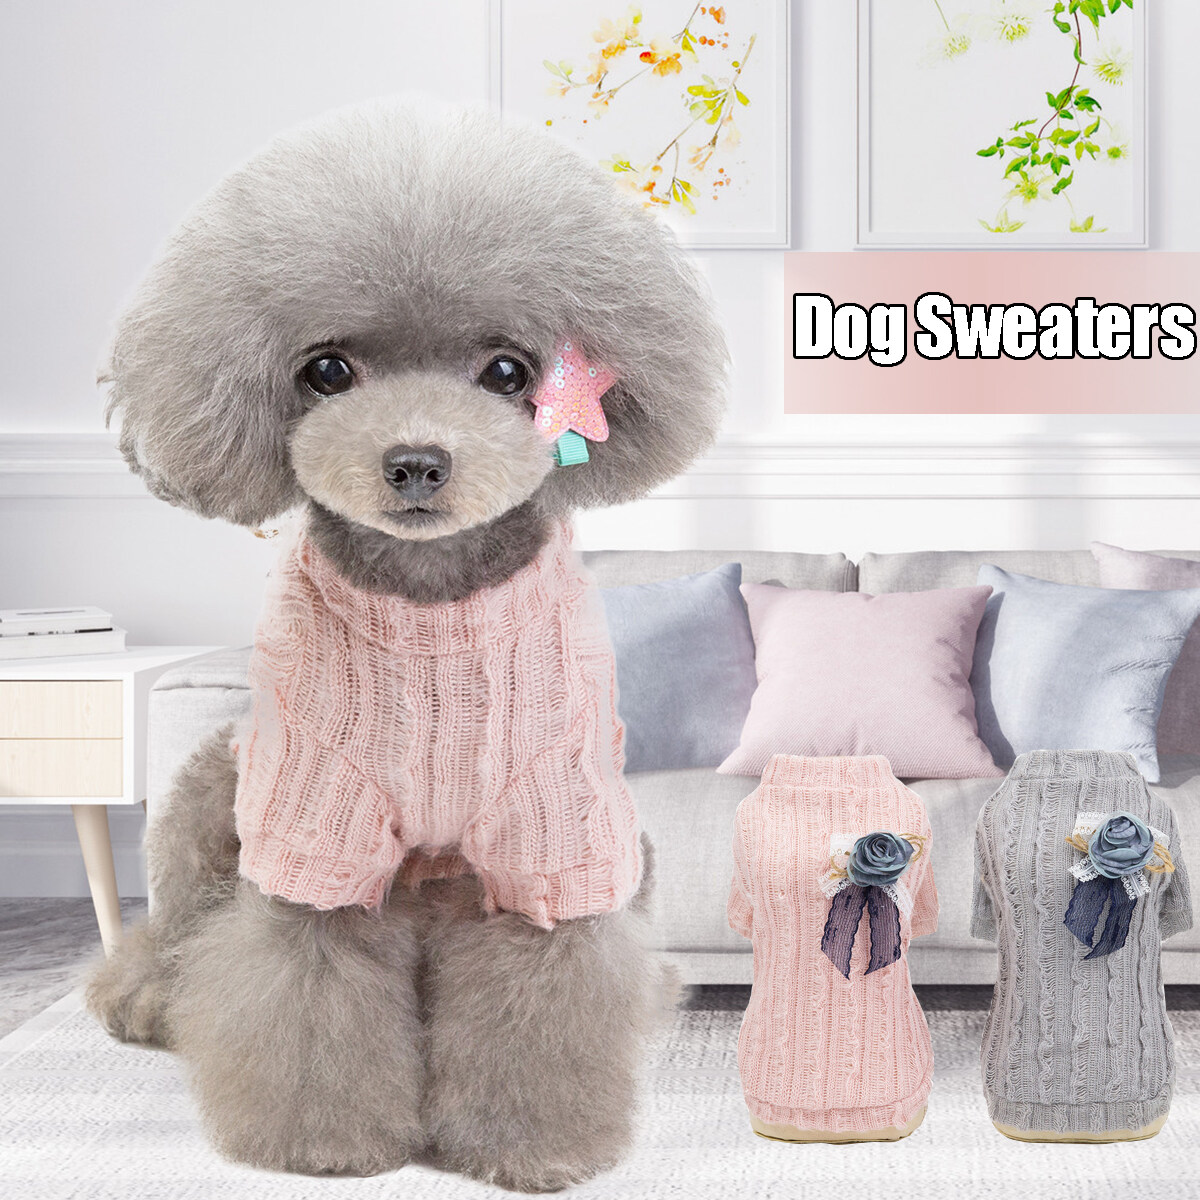 Cute Pet Puppy Cat Warm Jumper Sweater Knitwear Coat Apparel Clothes Sweatershirt Winter Small Dog Chihuahua Hoodie Clothes Dog Jacket.